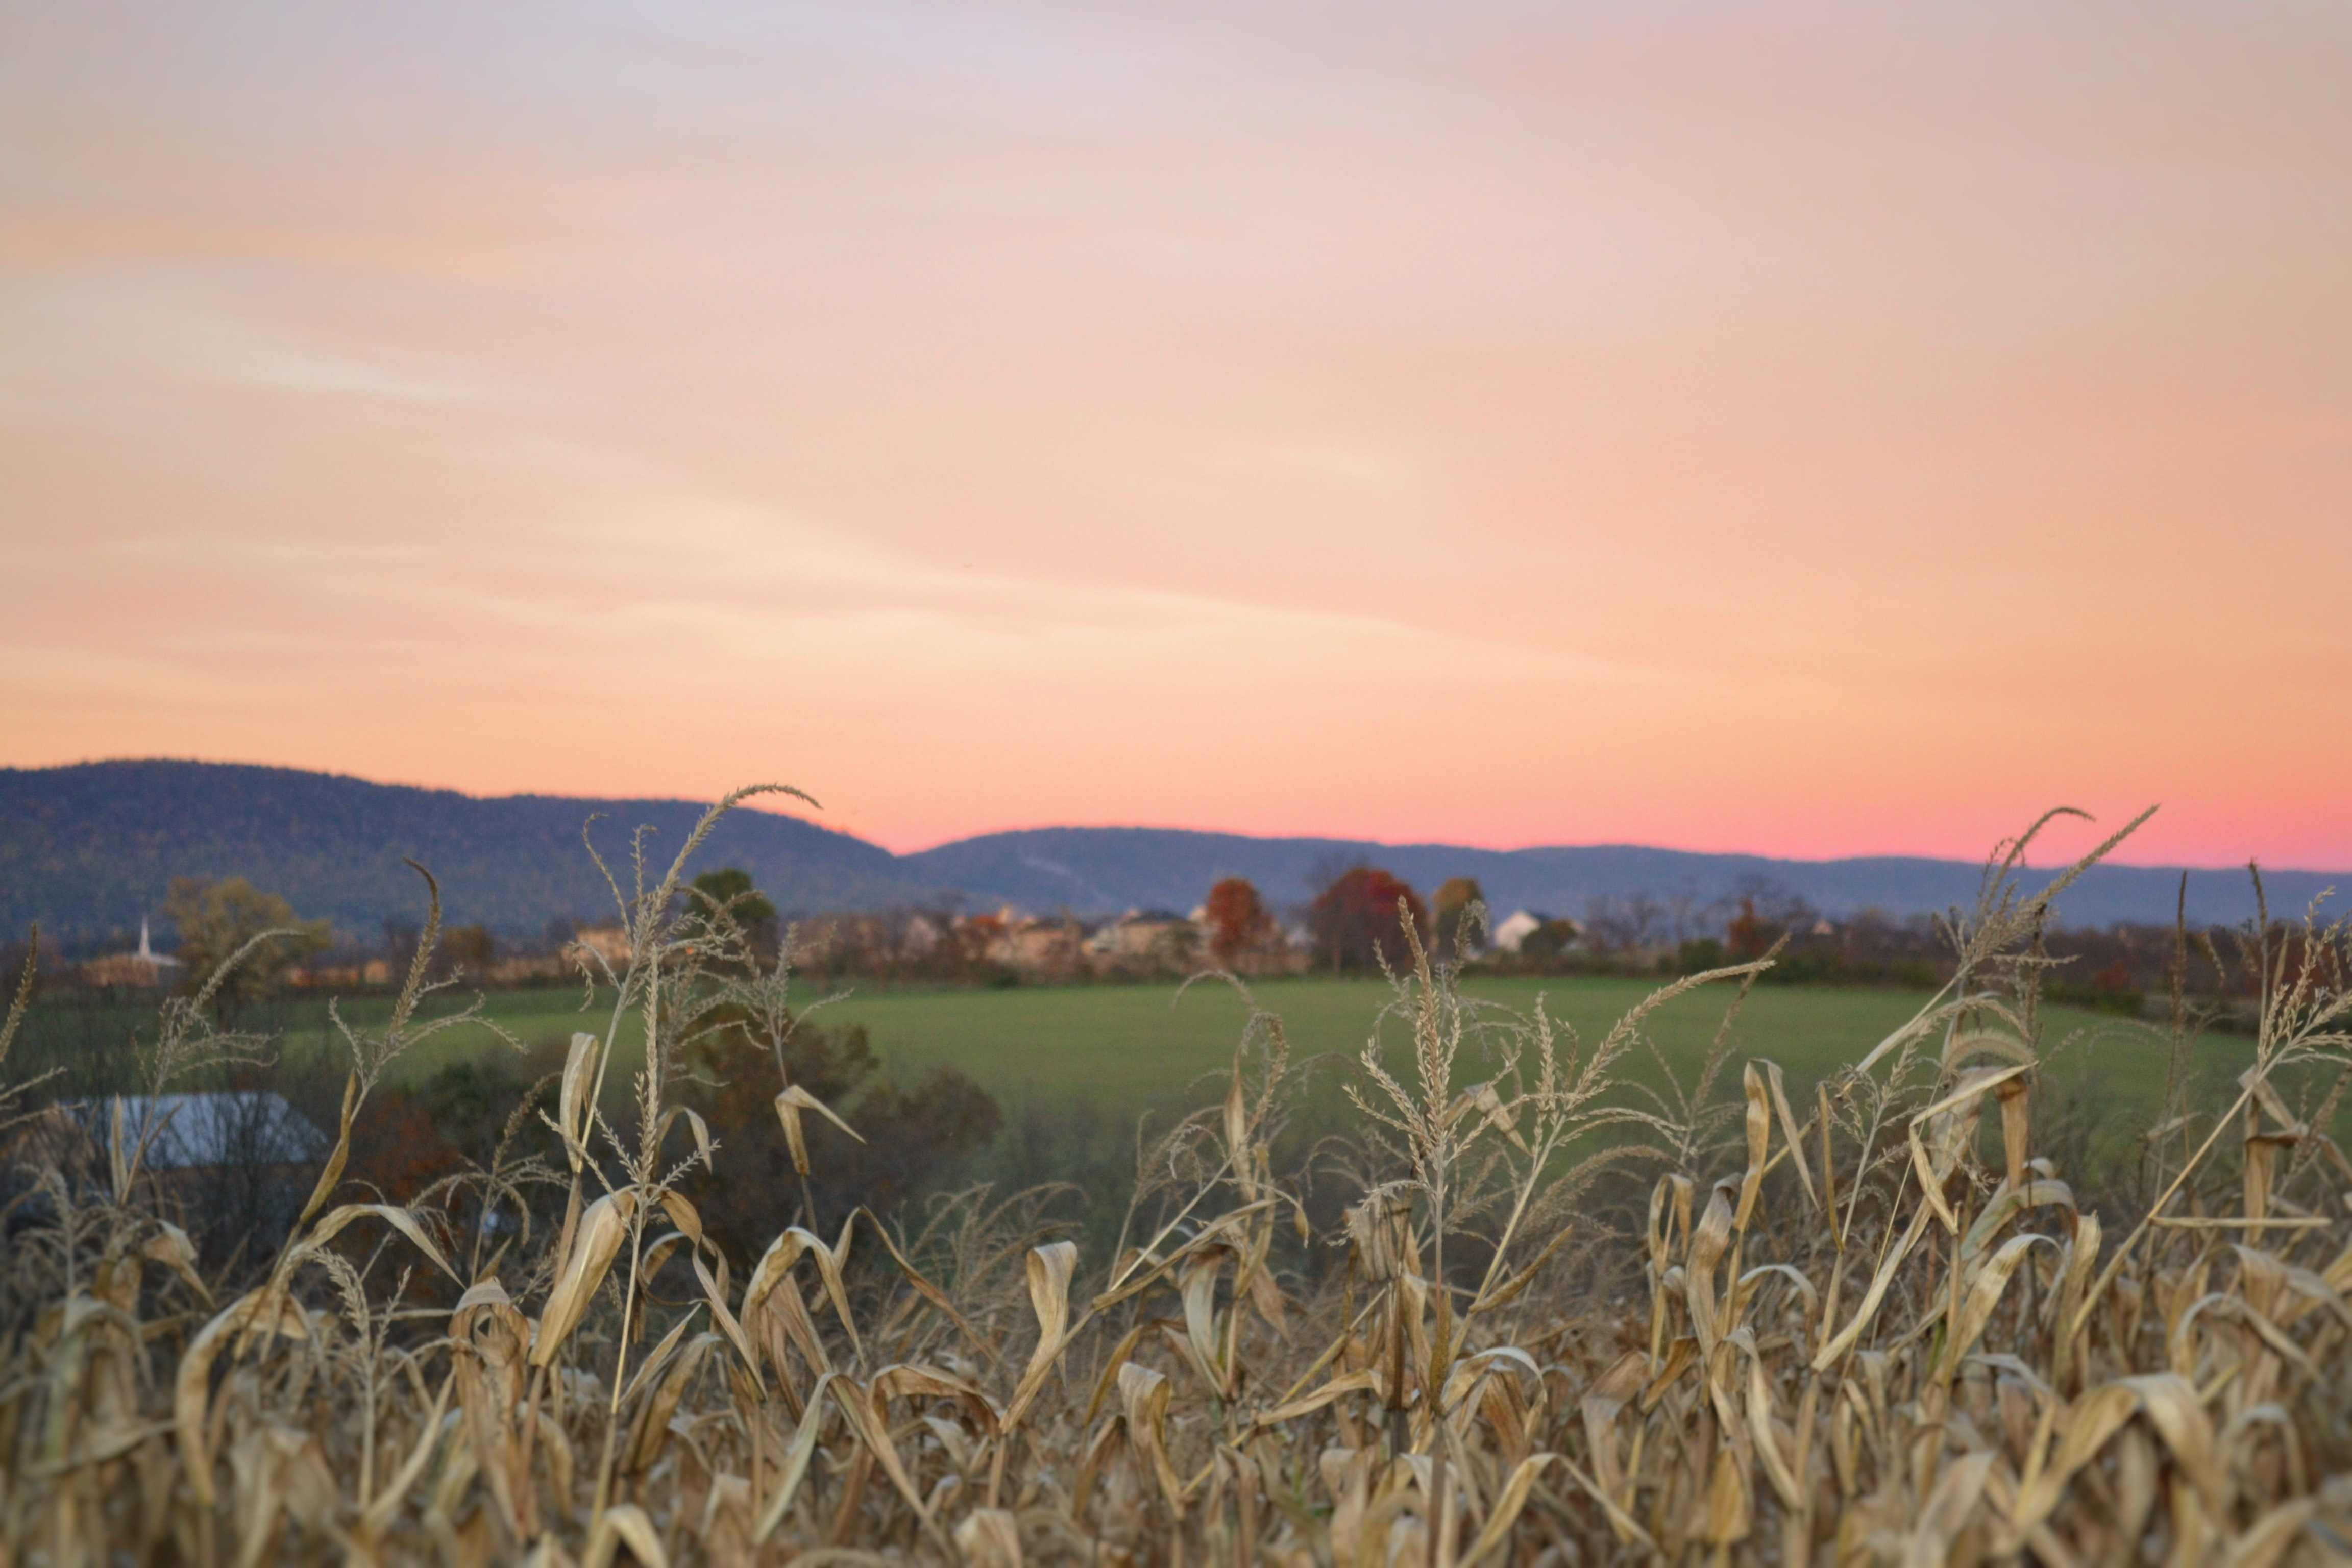 Dry crops in the foreground with a blurry rural landscape in the background